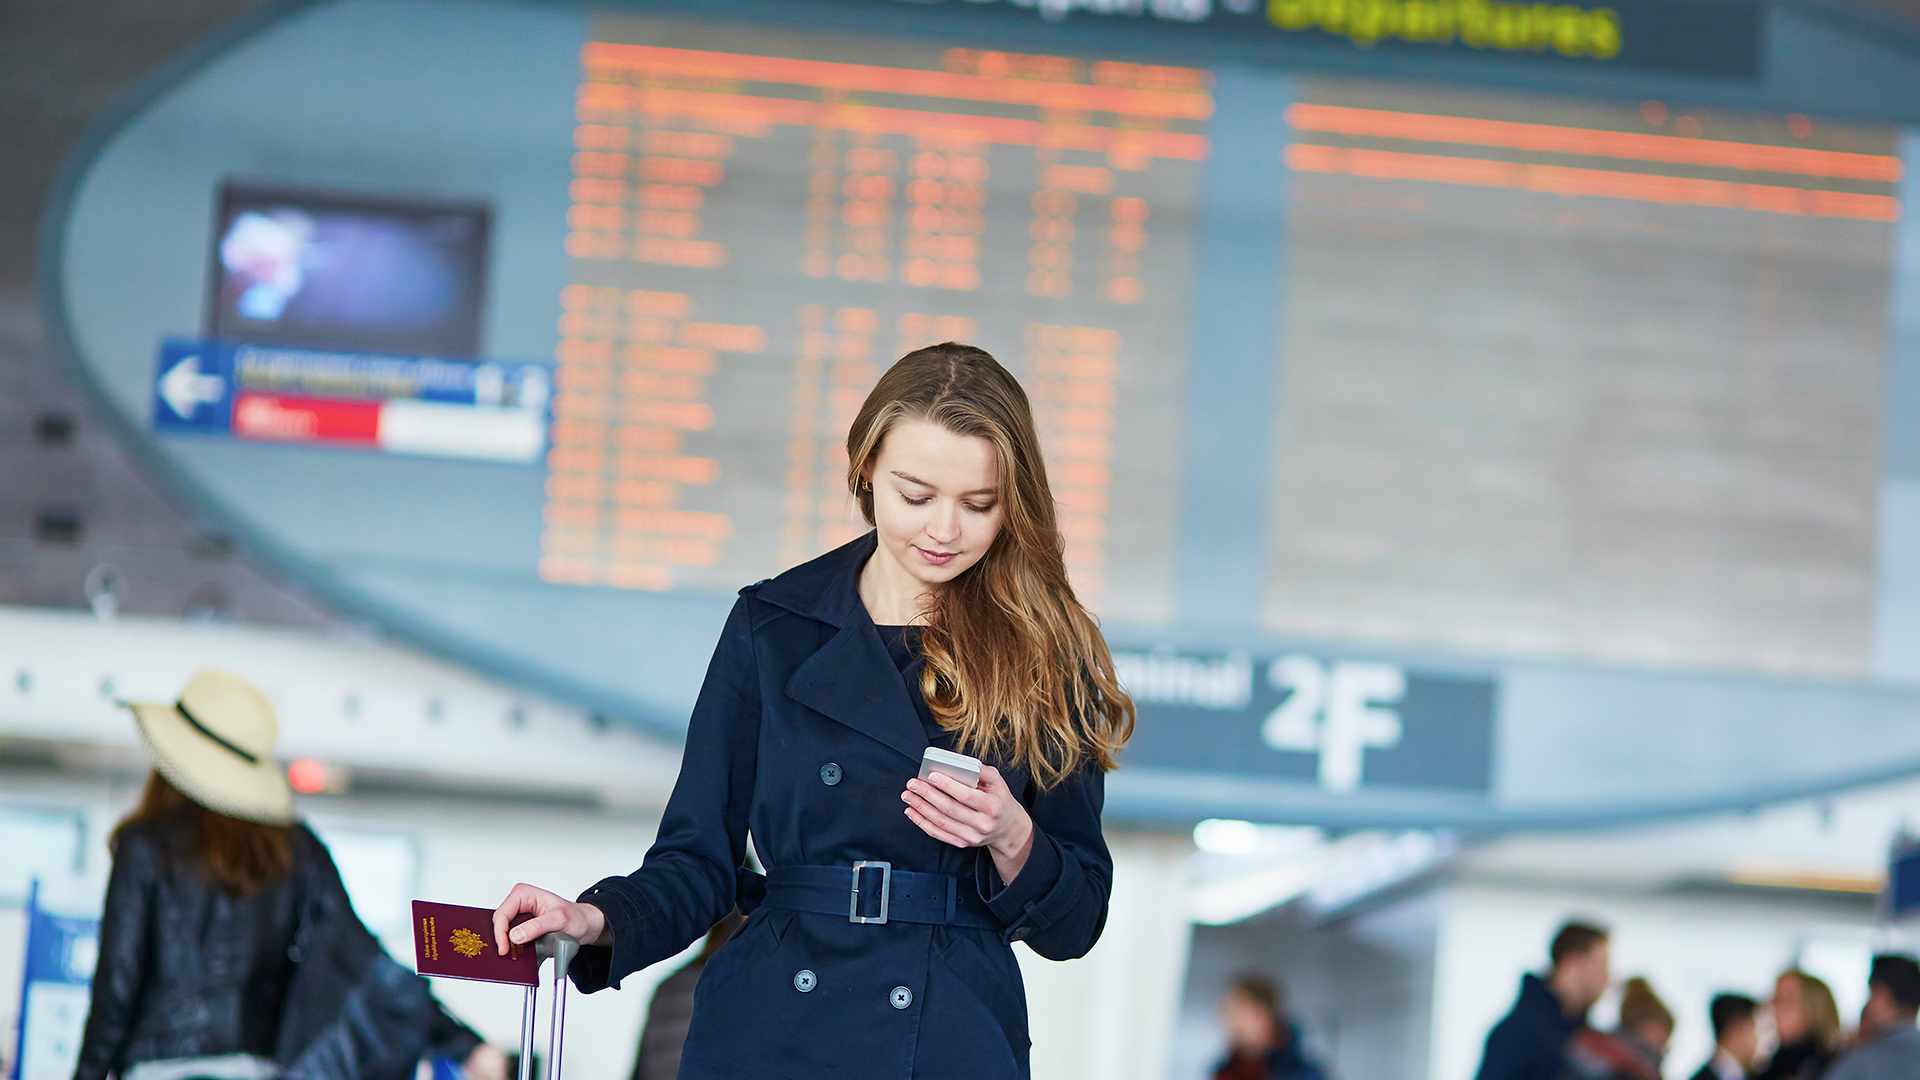 Cybersecurity for airports